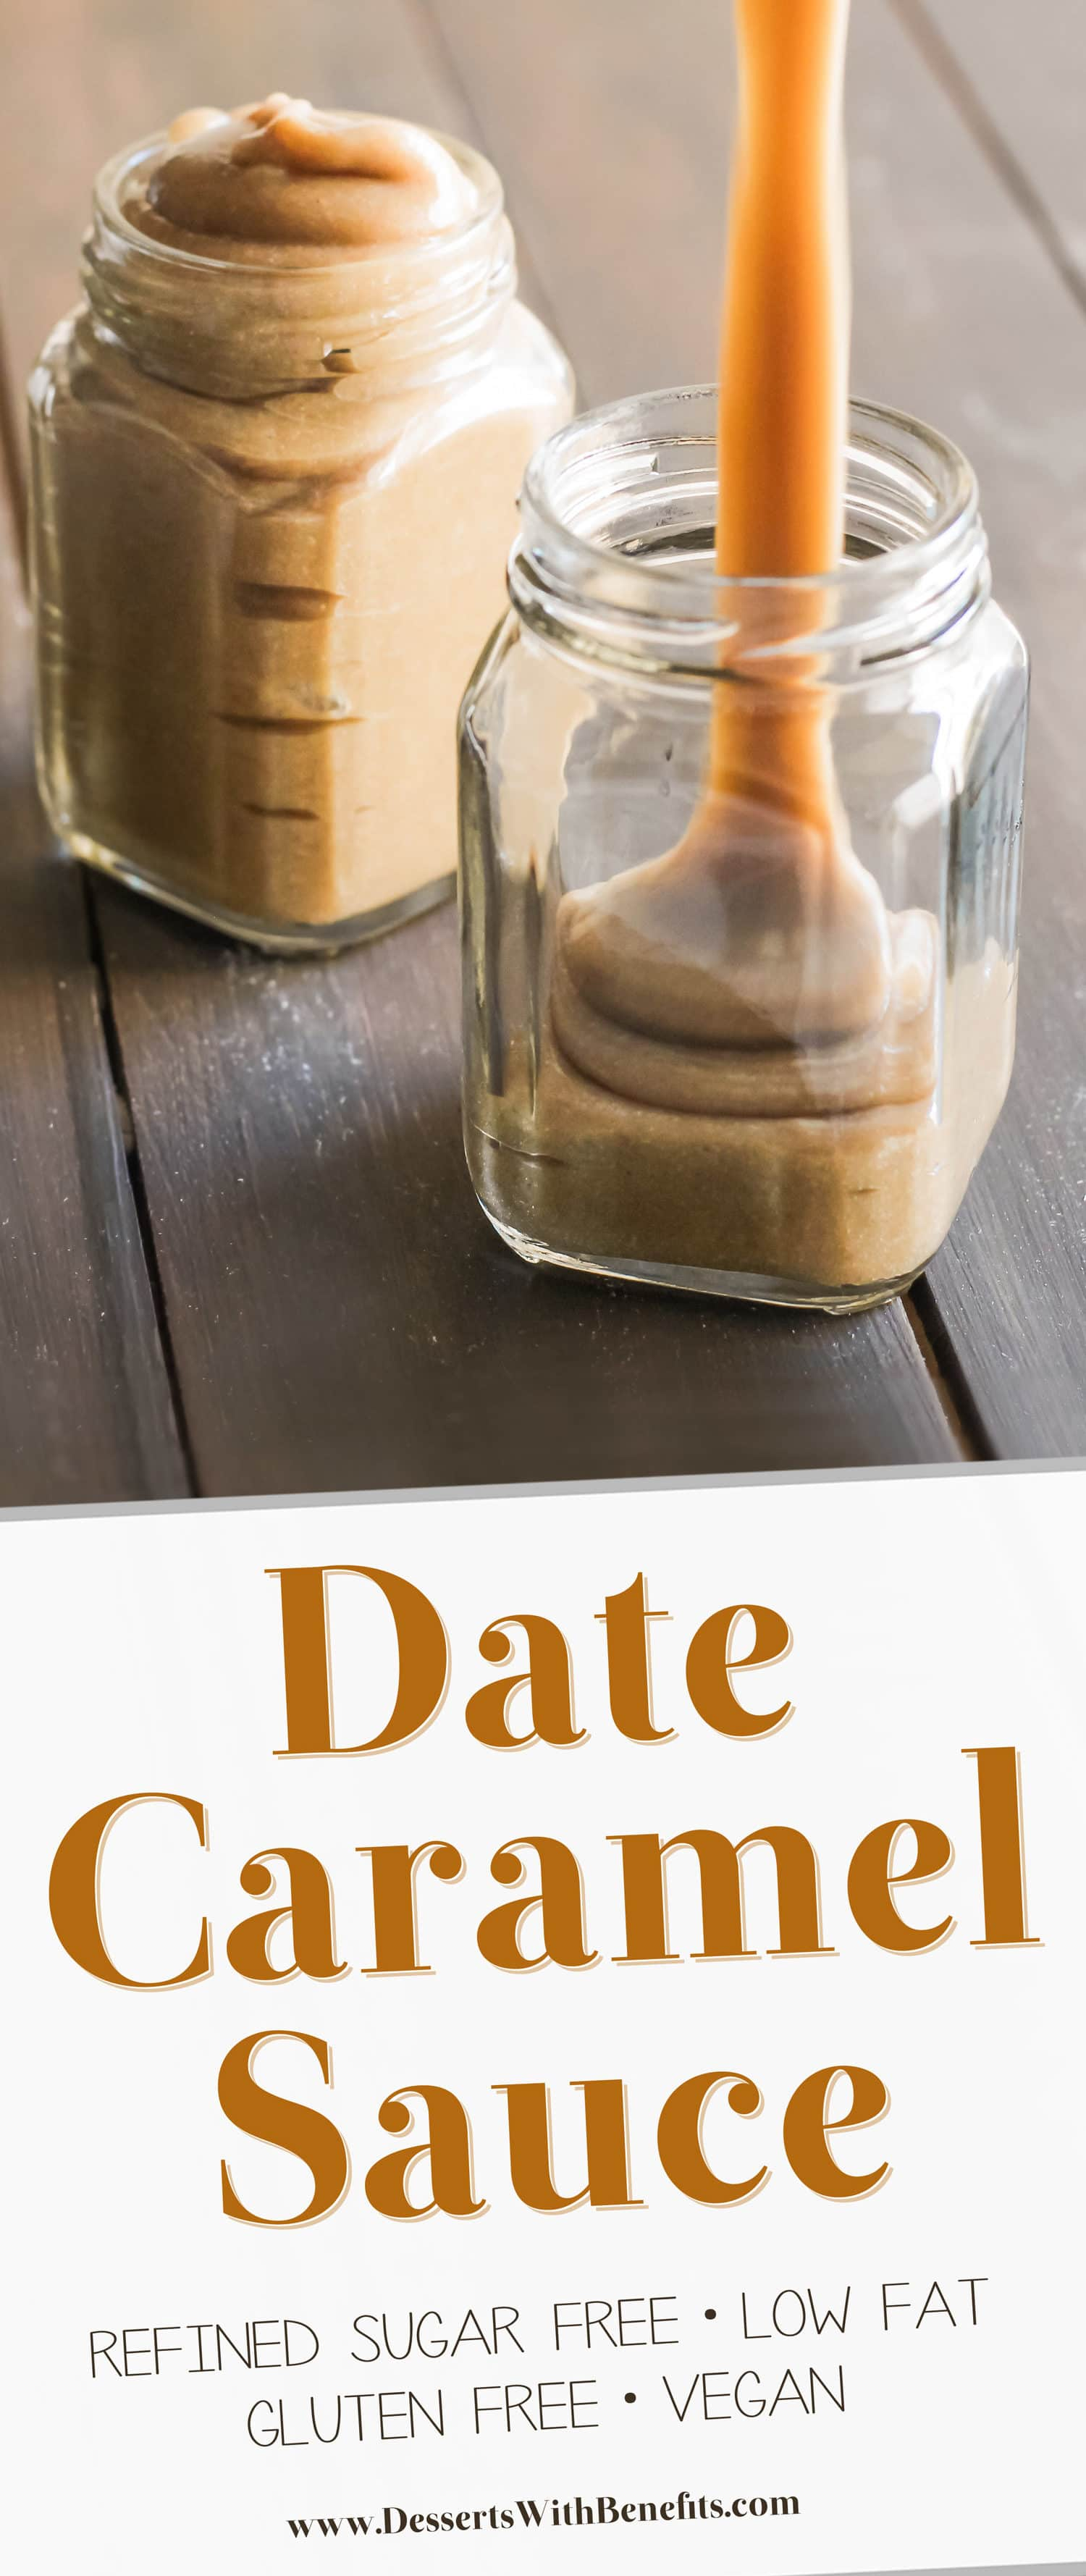 [How to make Date Caramel Sauce]This Healthy Date Caramel Sauce issilky smooth, creamy, rich, and sweet, you'd never know it's vegan and low fat with no sugar added! Healthy Dessert Recipes with sugar free, low calorie, low carb, high protein, gluten free, dairy free, vegan, and raw options at the Desserts With Benefits Blog (www.DessertsWithBenefits.com)